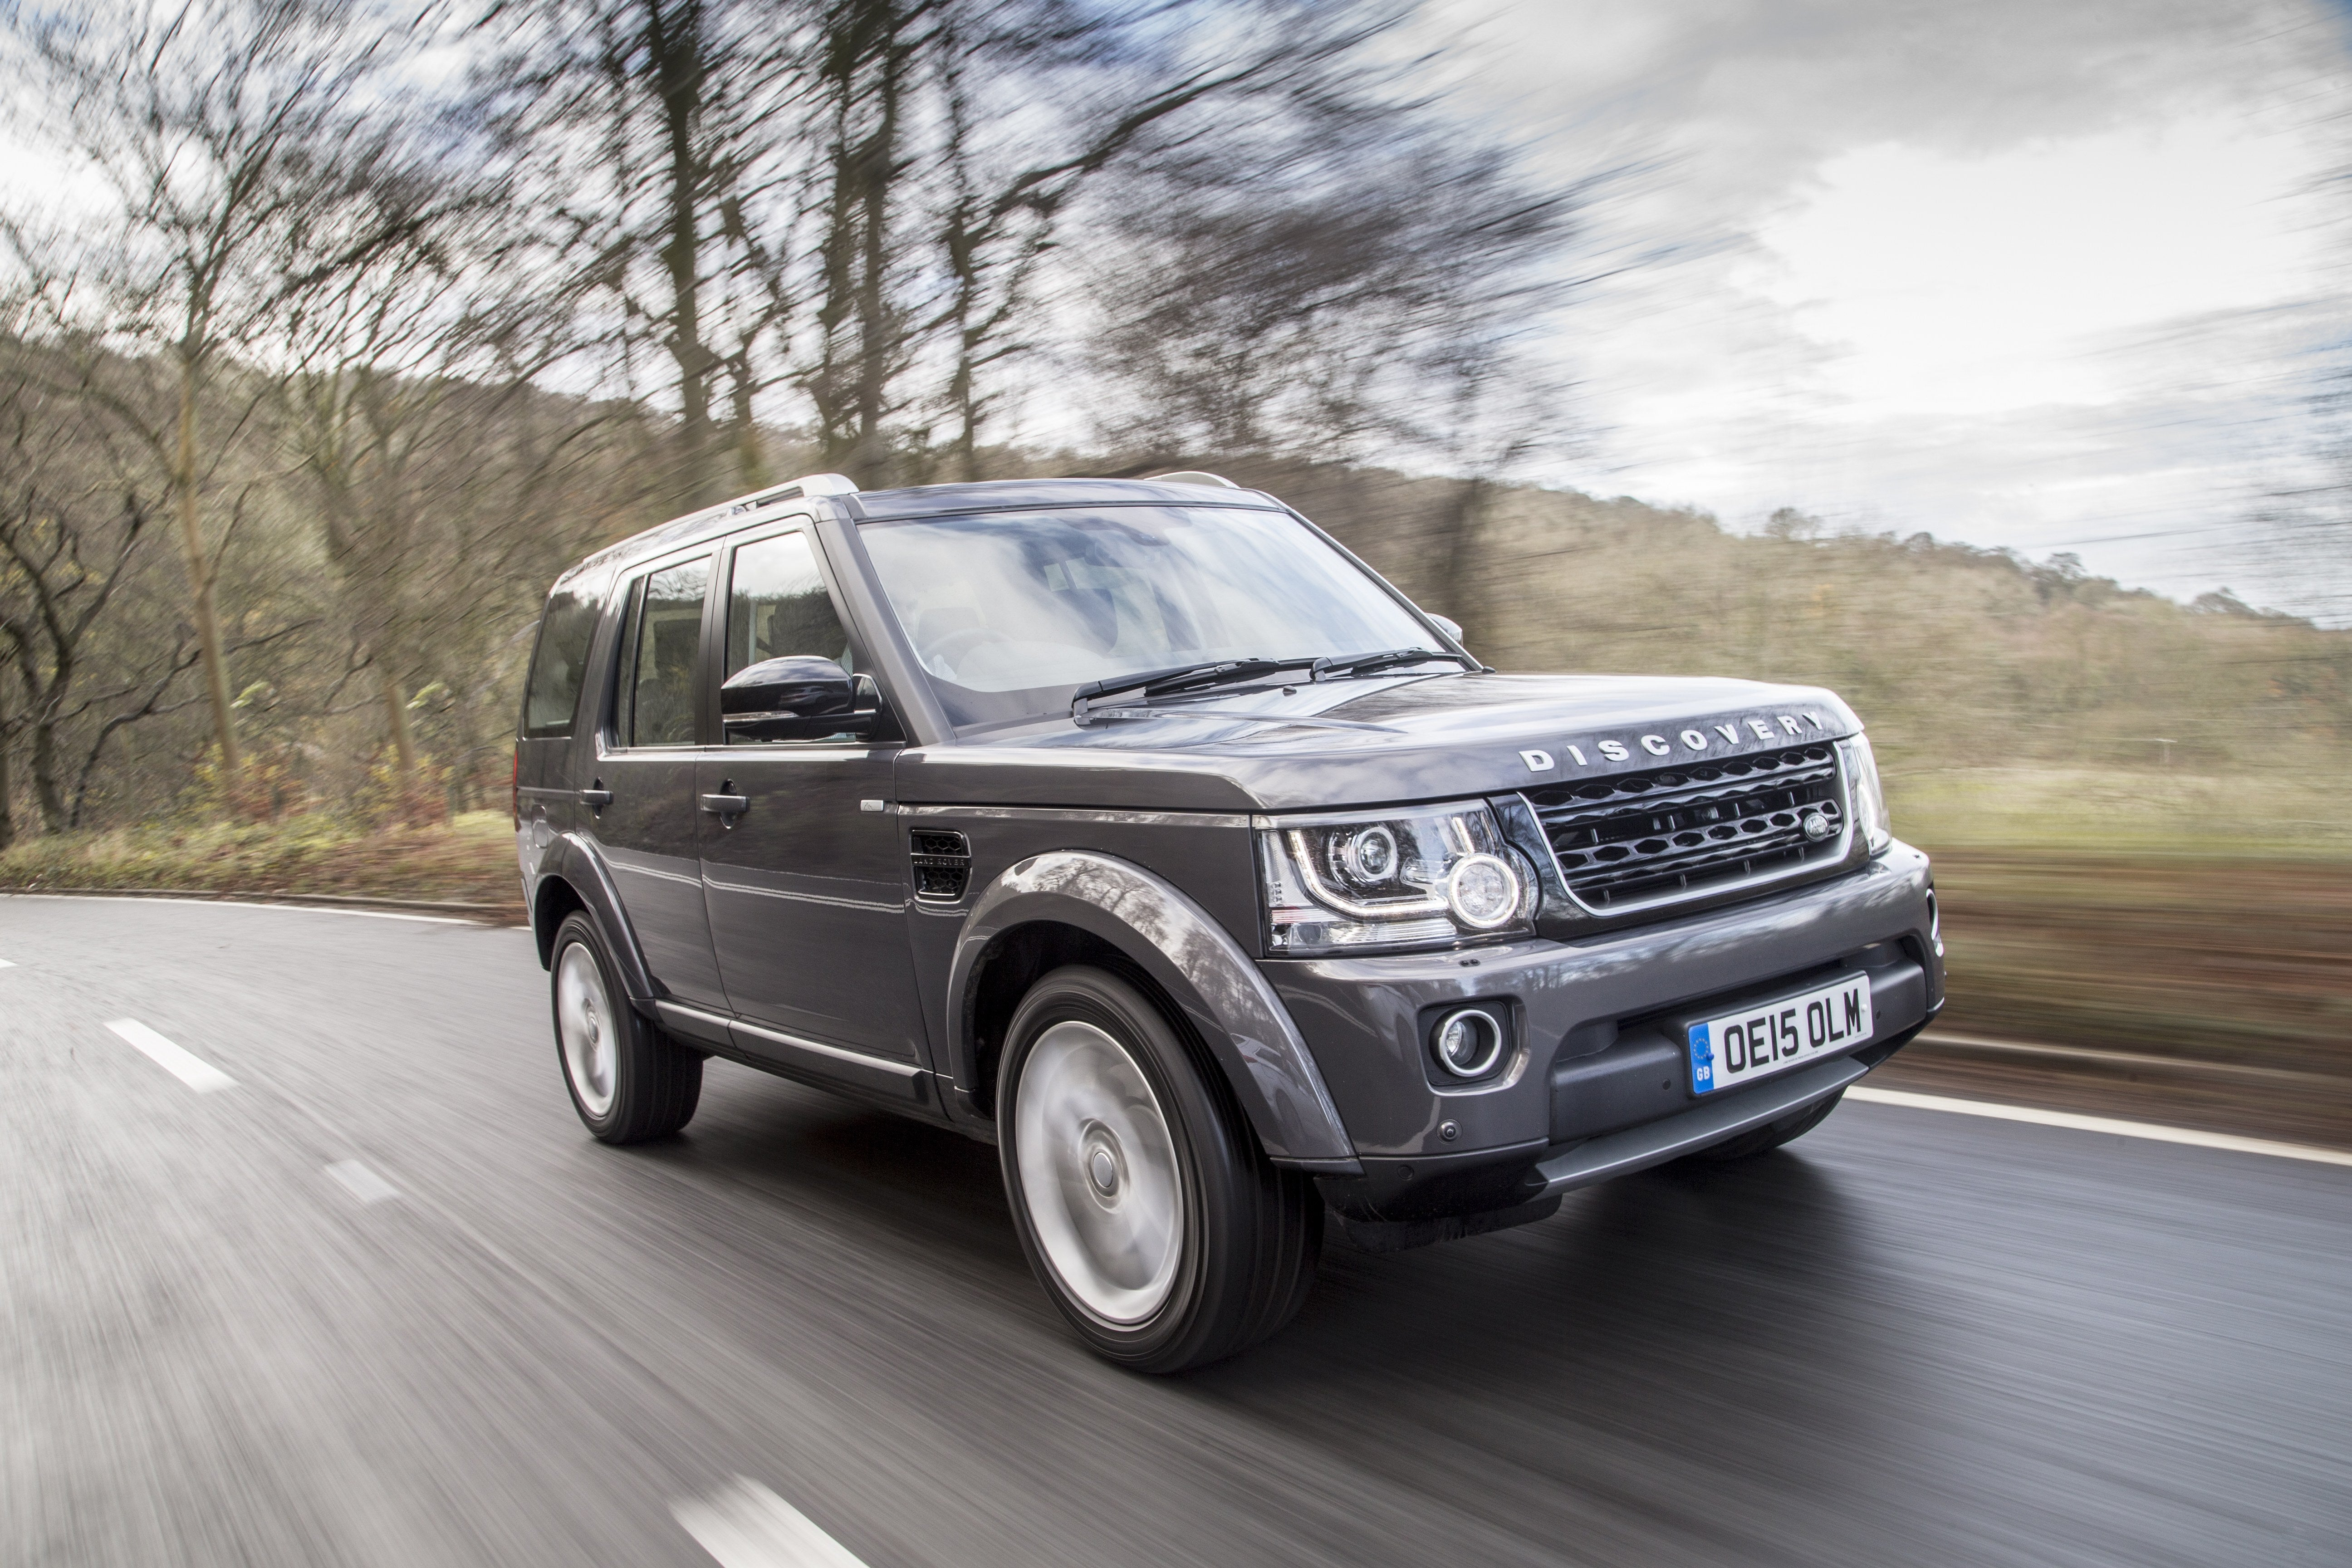 Land Rover Discovery 2009 frontright exterior